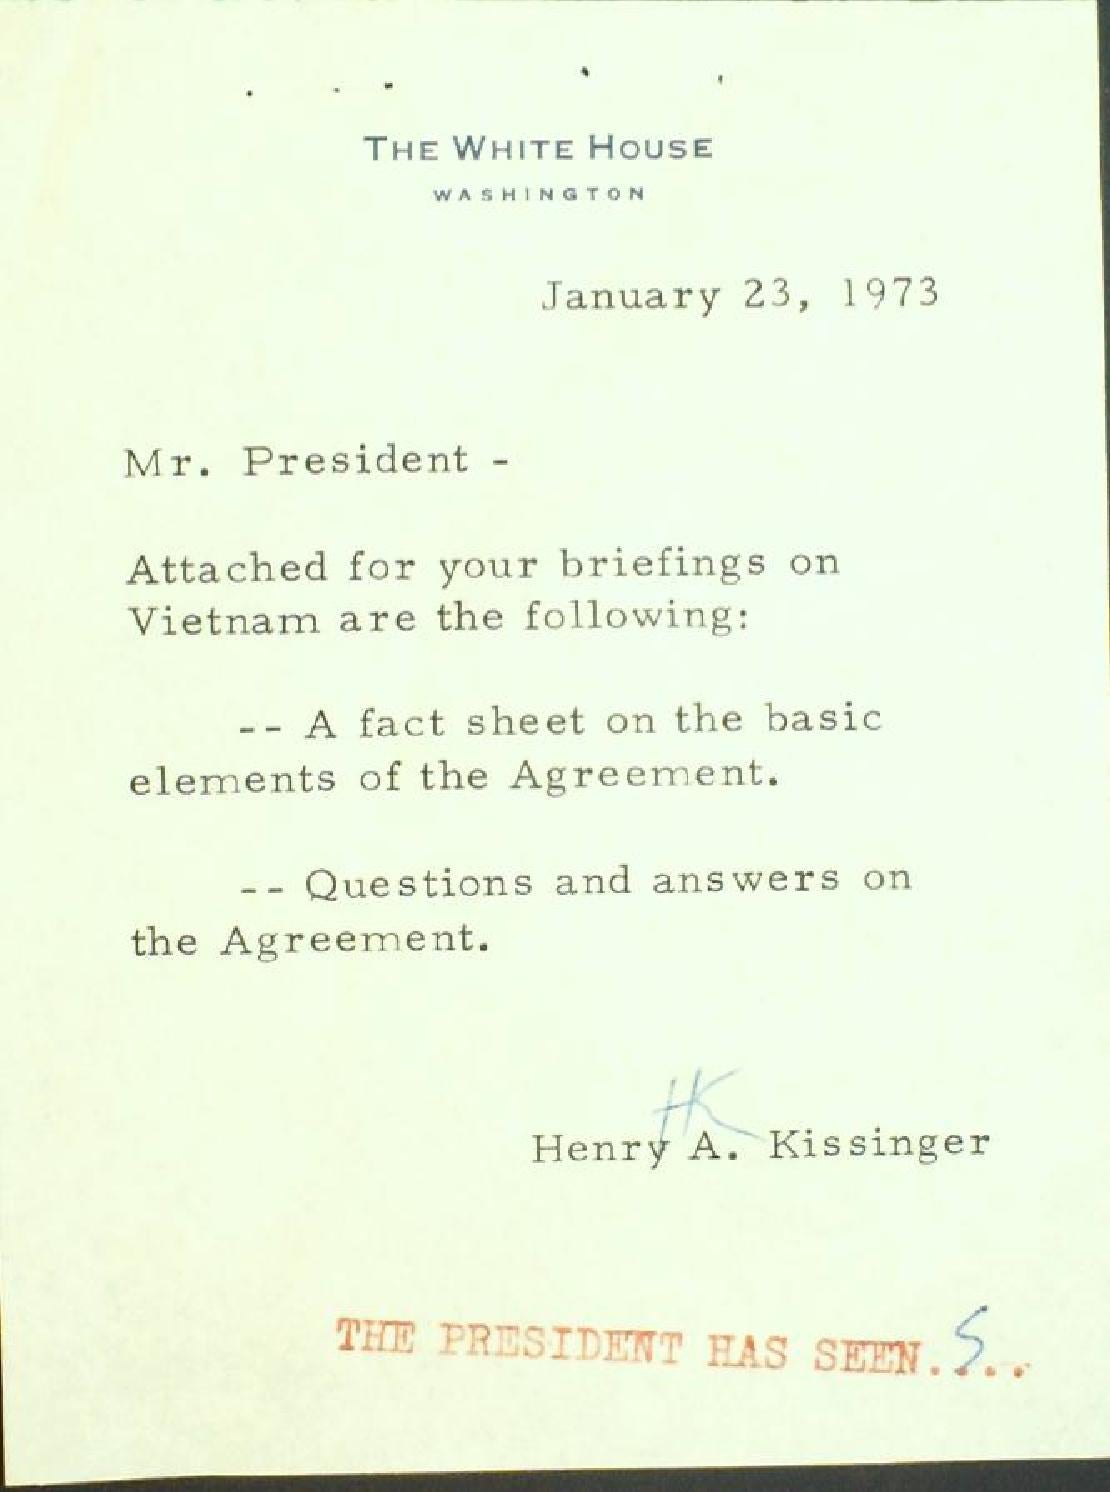 Henry Kissinger Reports On The Ceasefire To President Nixon